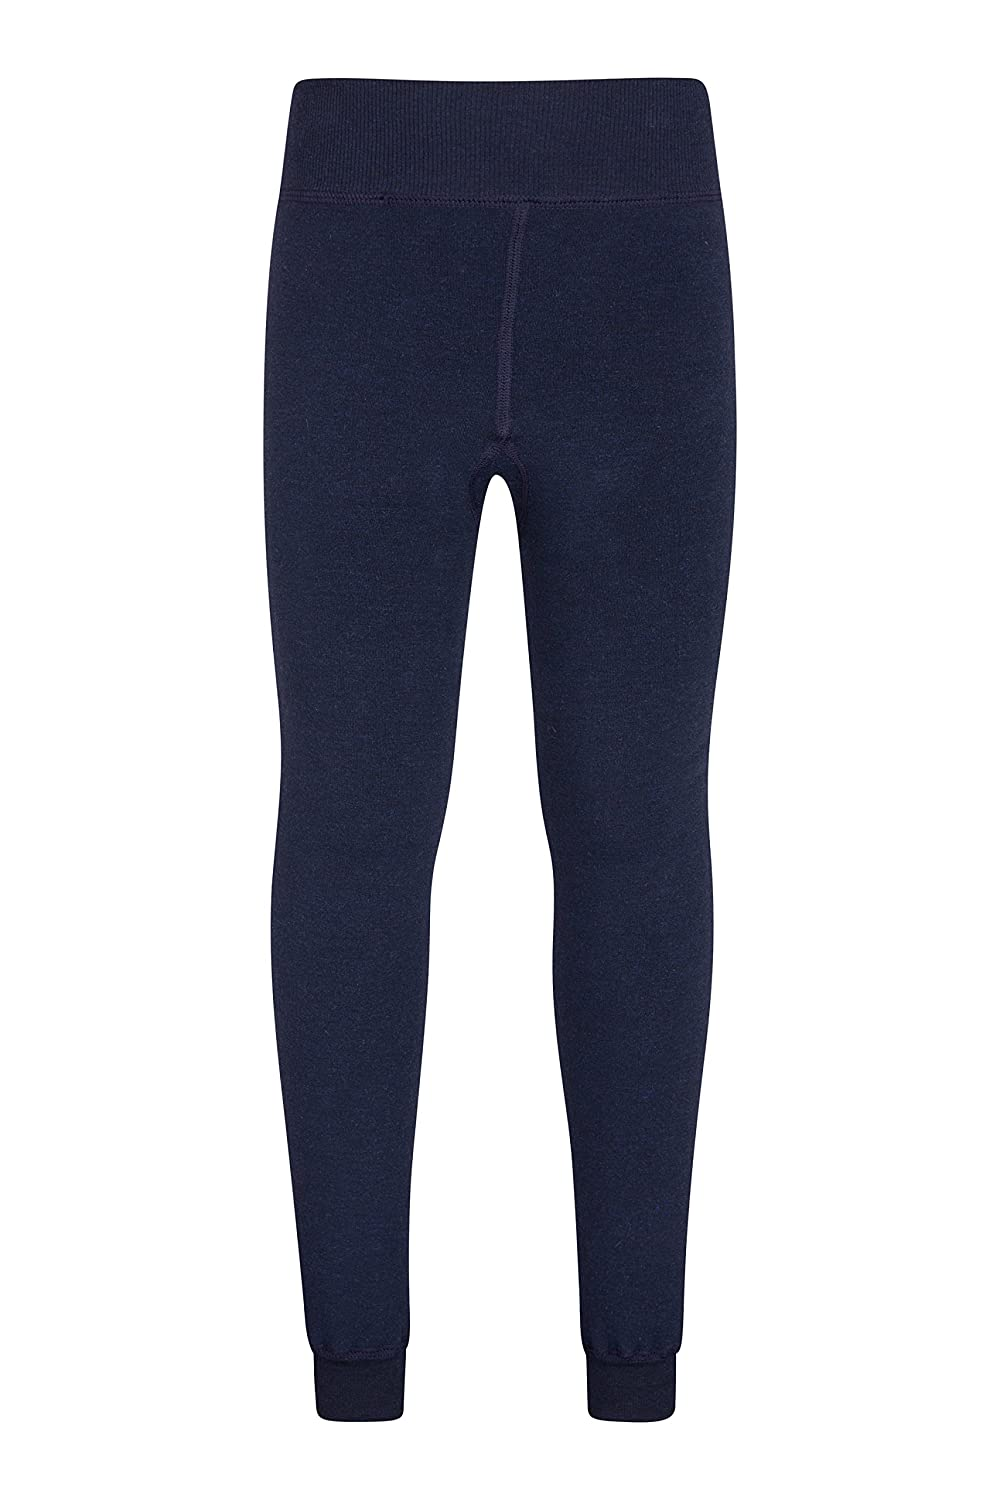 Mountain Warehouse Winter Essential Youth Leggings